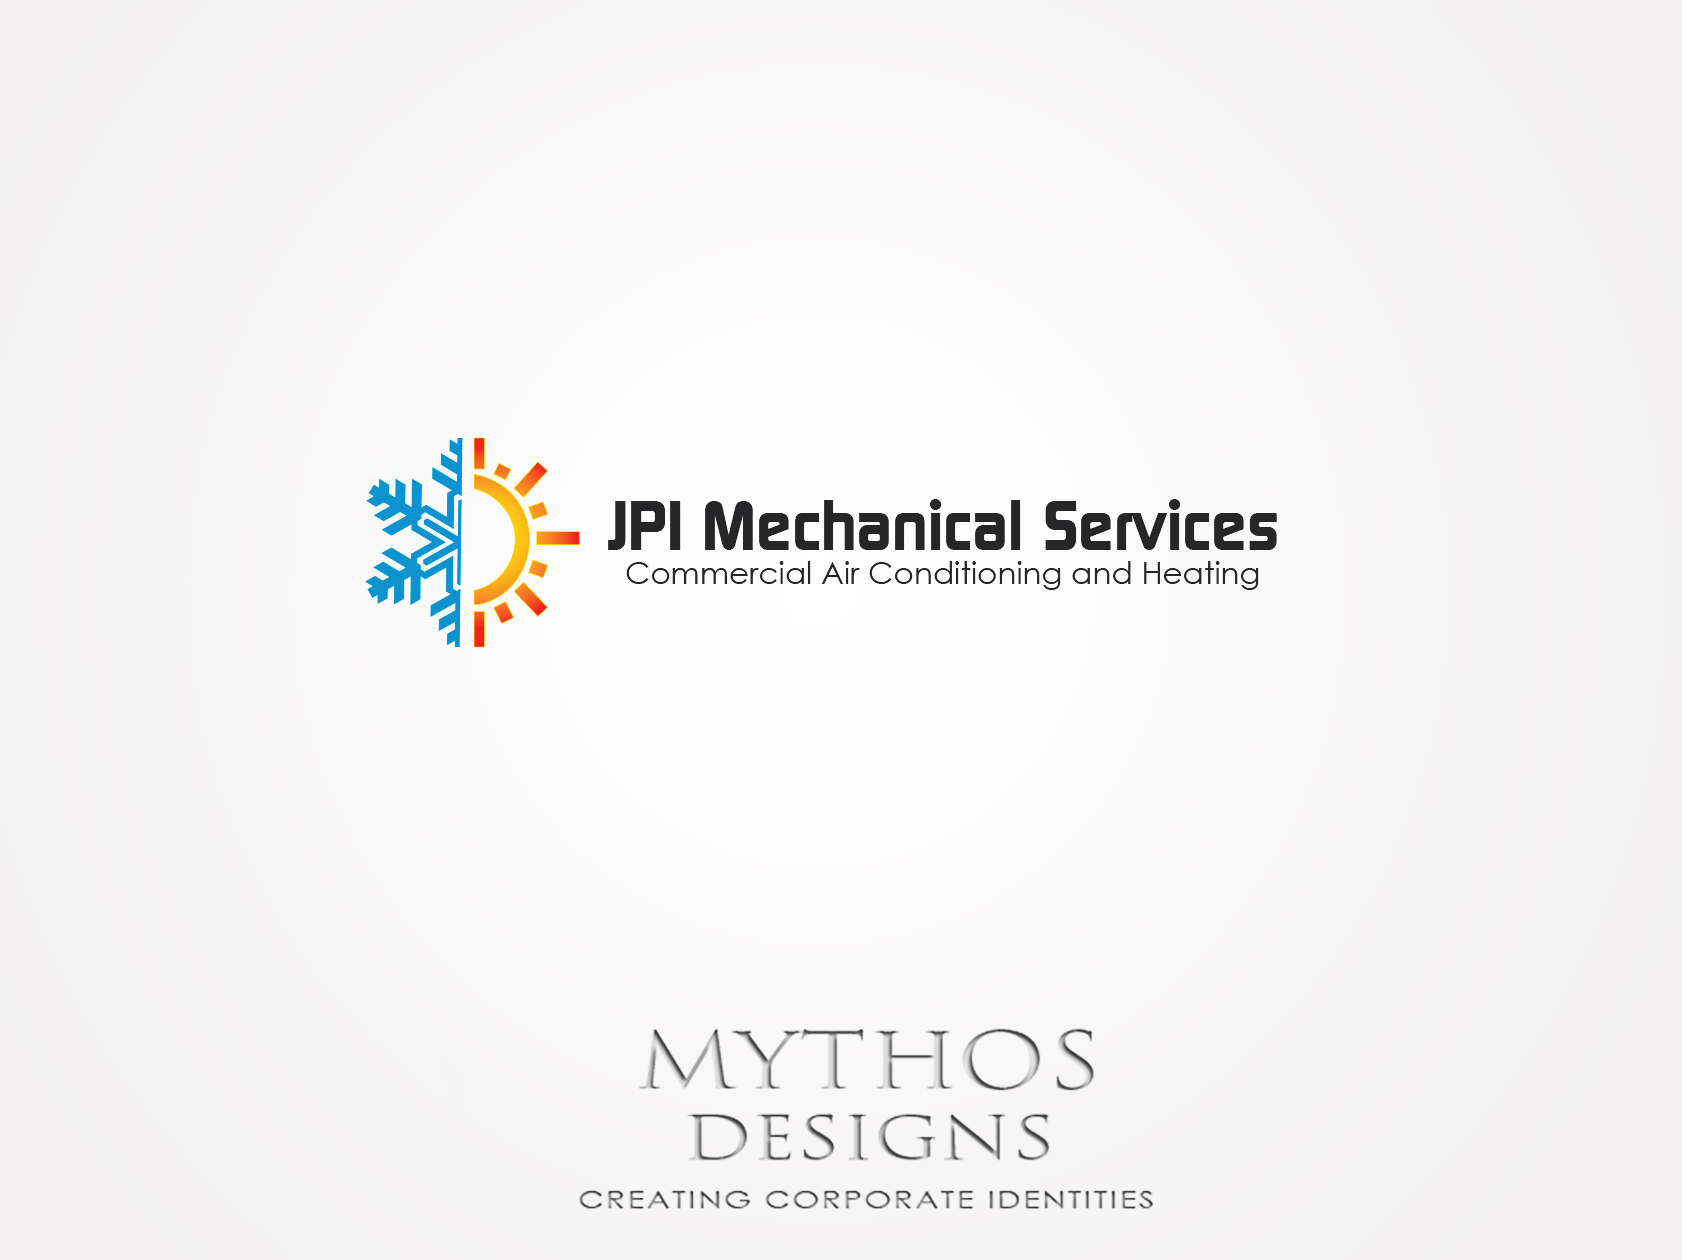 Logo Design by Mythos Designs - Entry No. 69 in the Logo Design Contest Inspiring Logo Design for JPI Mecanical Services.